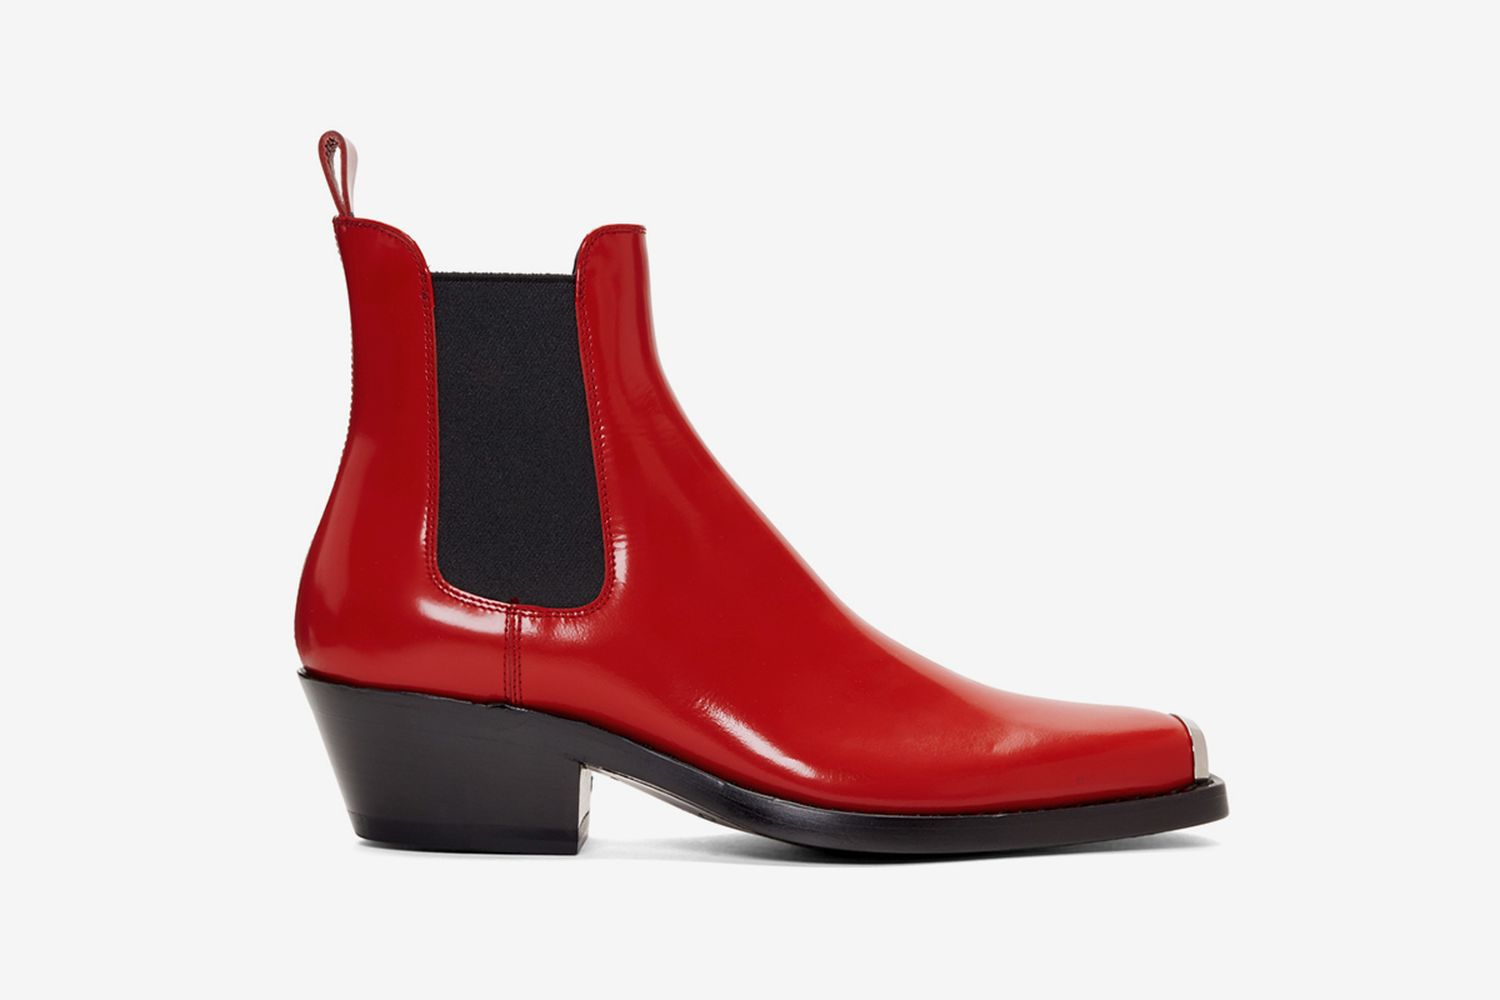 Western Chris Crosta Chelsea Boots